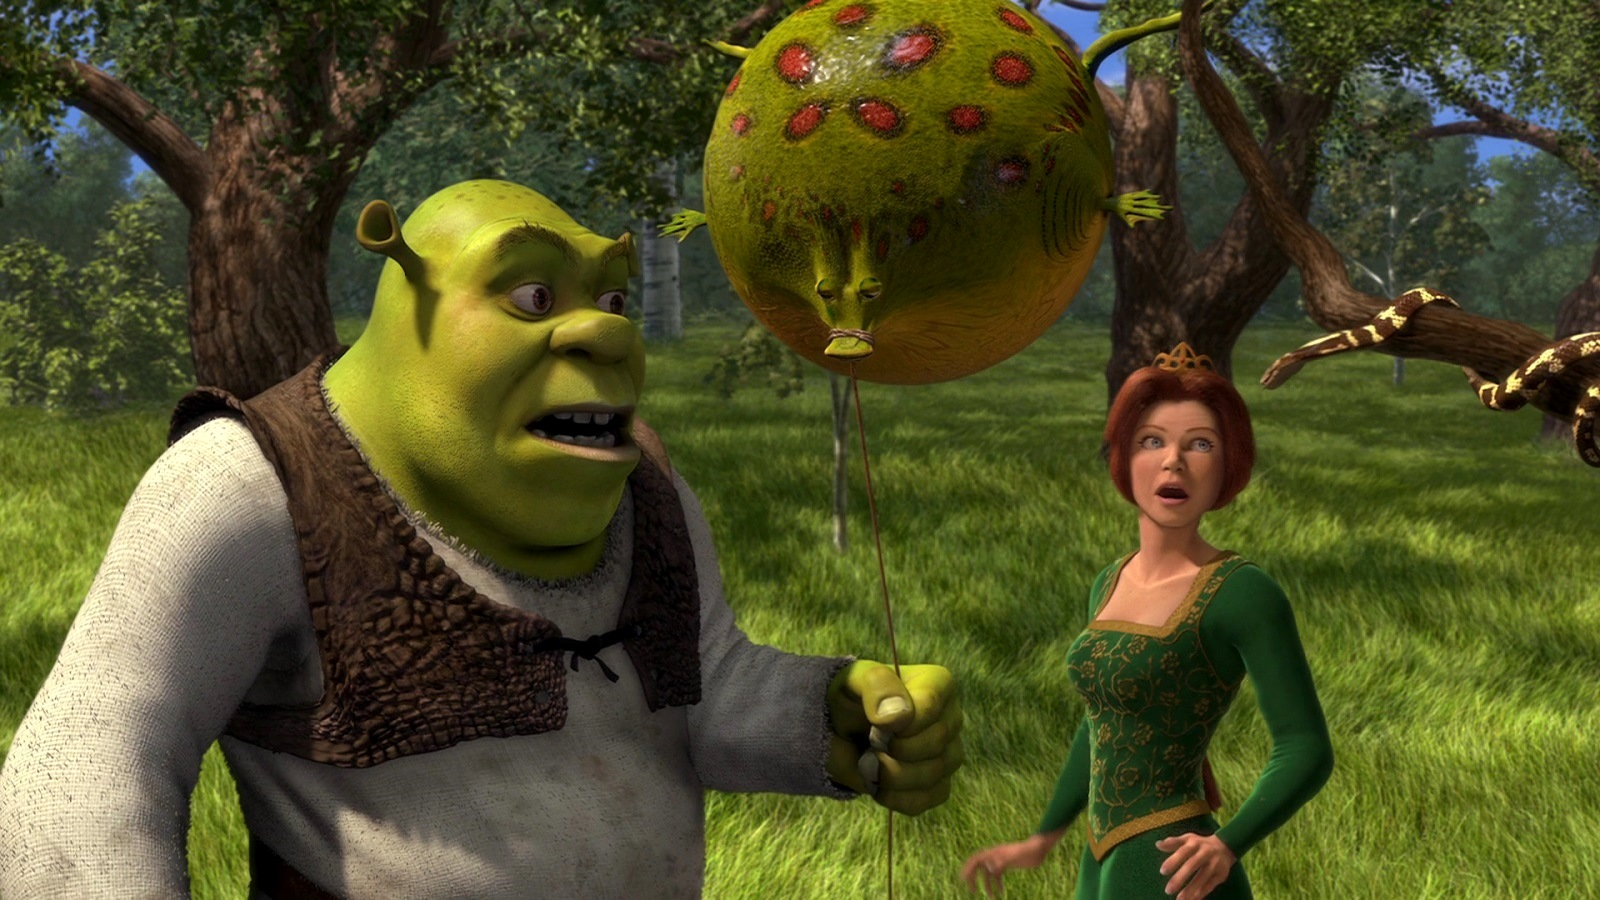 Shrek (voiced by Mike Myers) holding animal balloon and Princess Fiona (voiced by Cameron Diaz) in Shrek (2001)